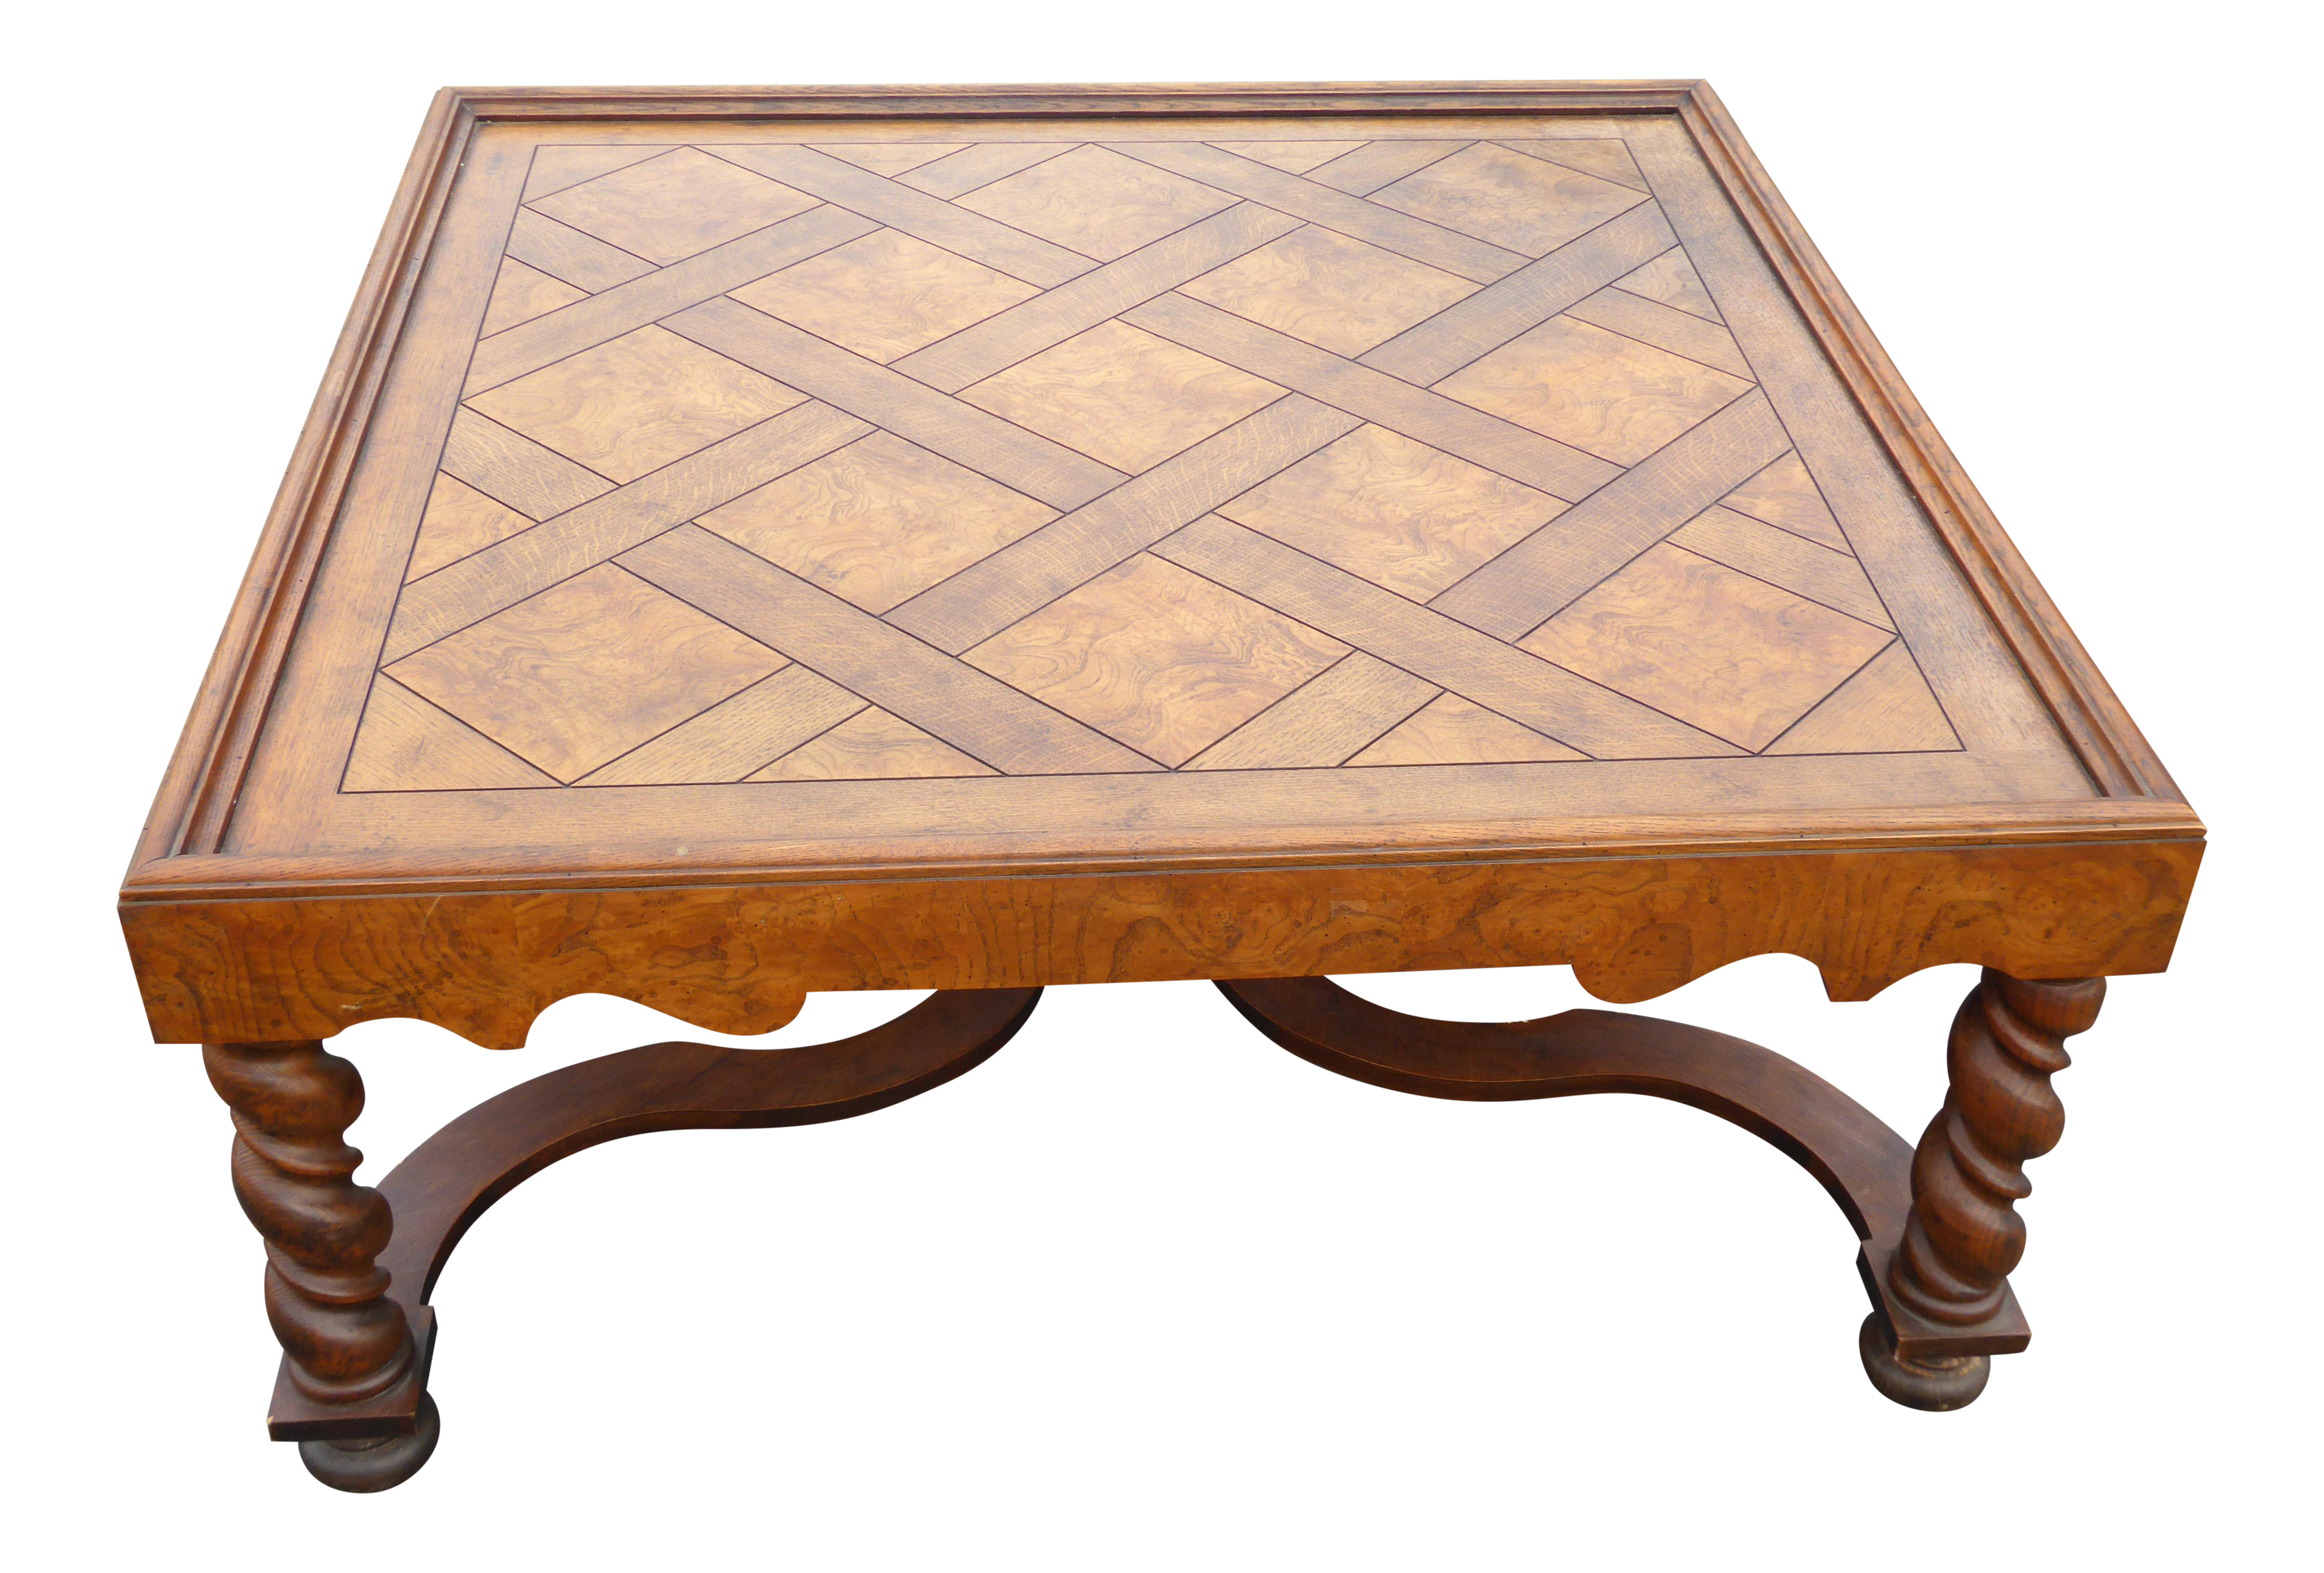 Wonderful Image Of Vintage French Country Barley Twist Coffee Table By Baker Furniture